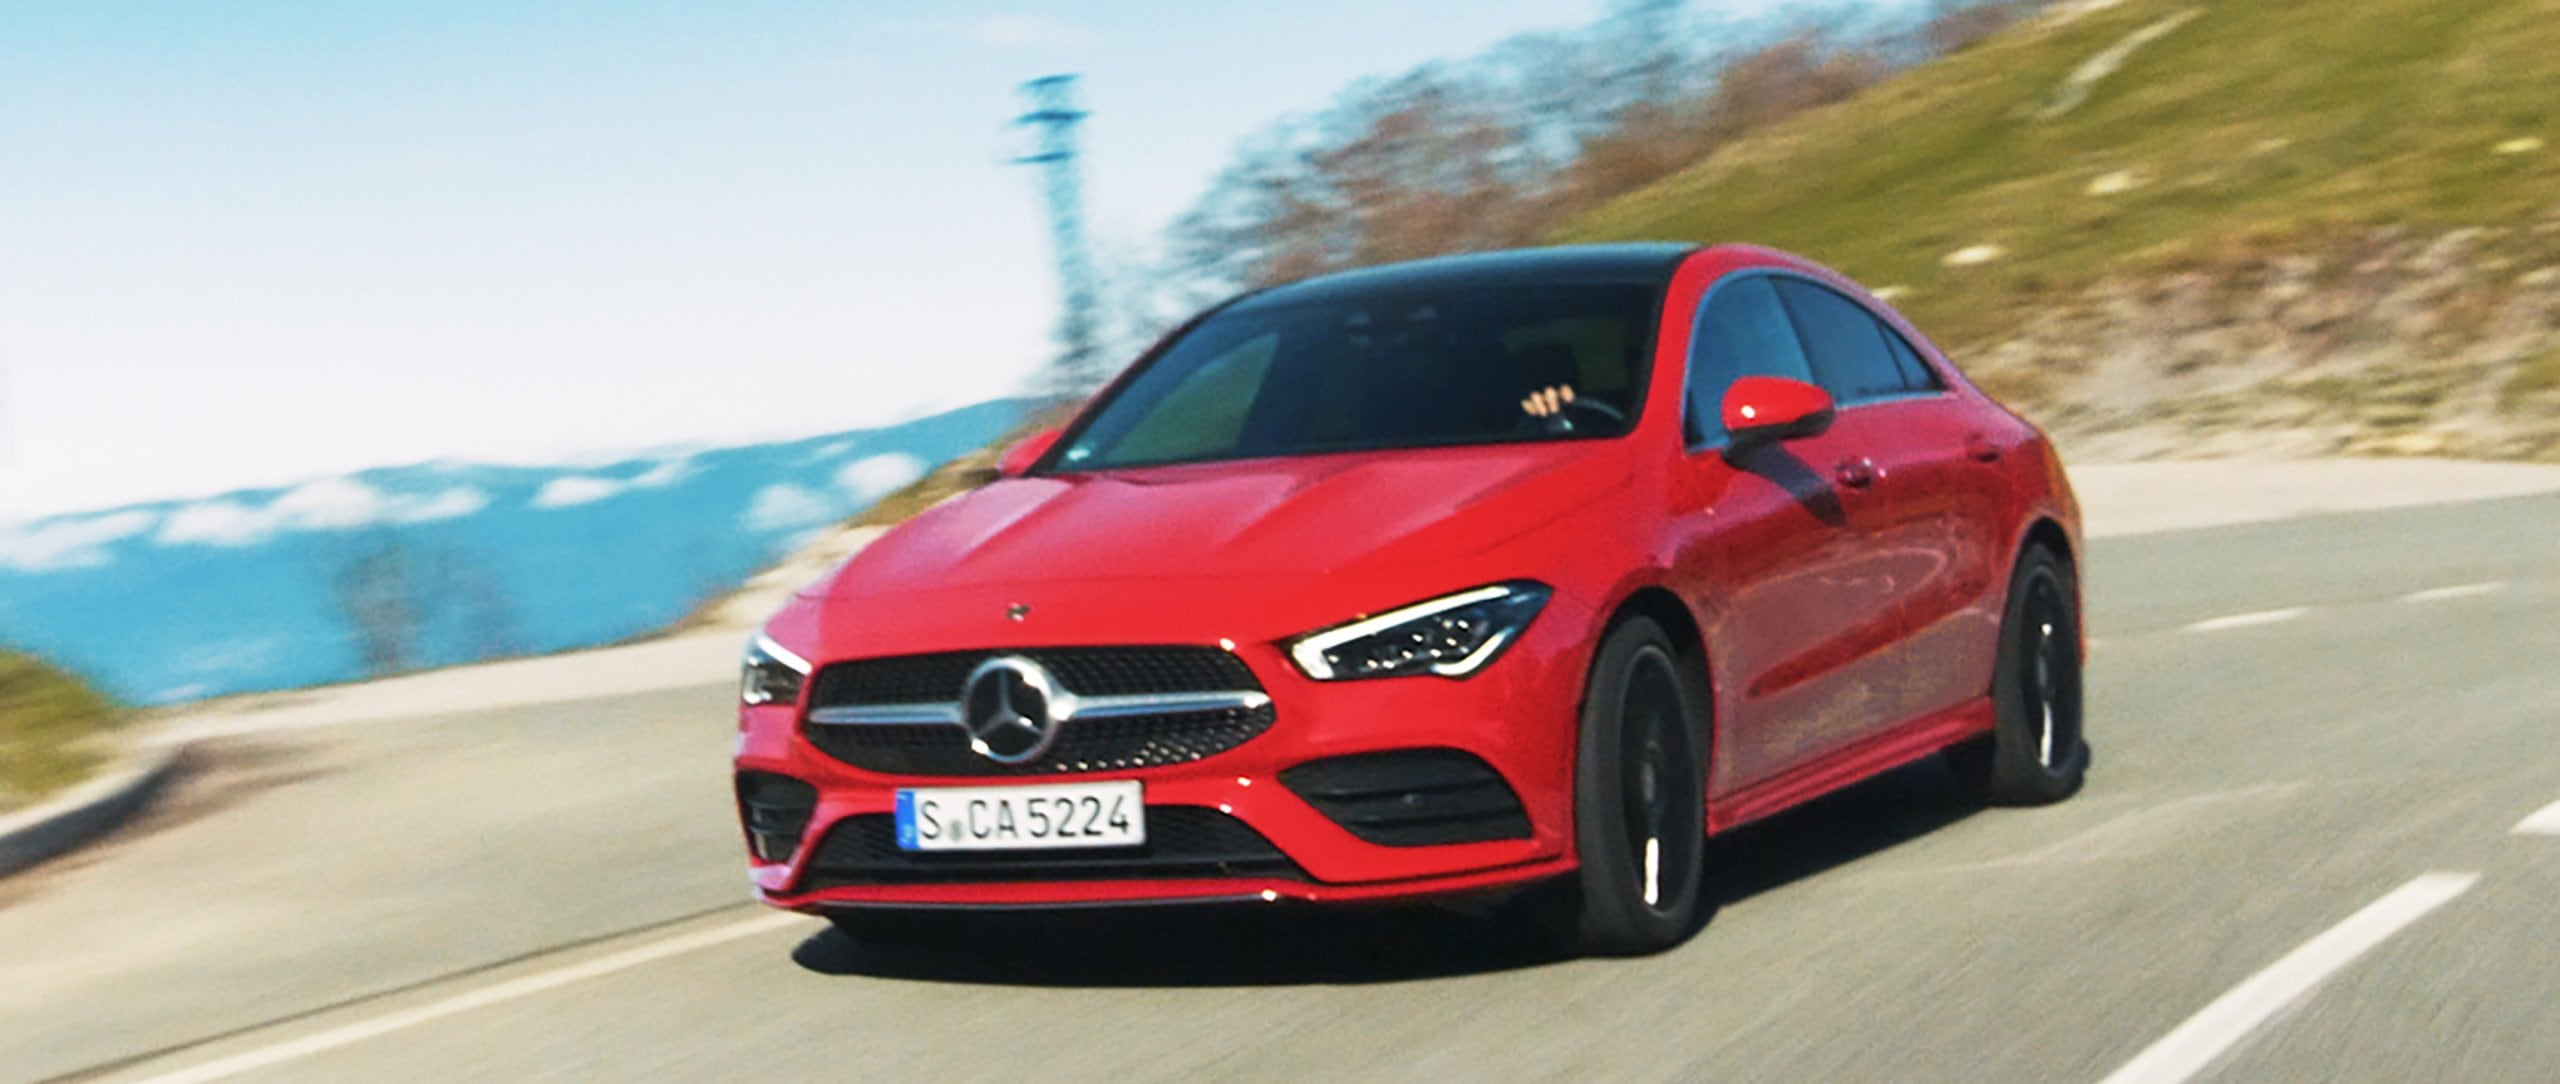 The new 2019 Mercedes-Benz CLA 250 4MATIC Coupé (C 118) in jupiter red driving on a country road.